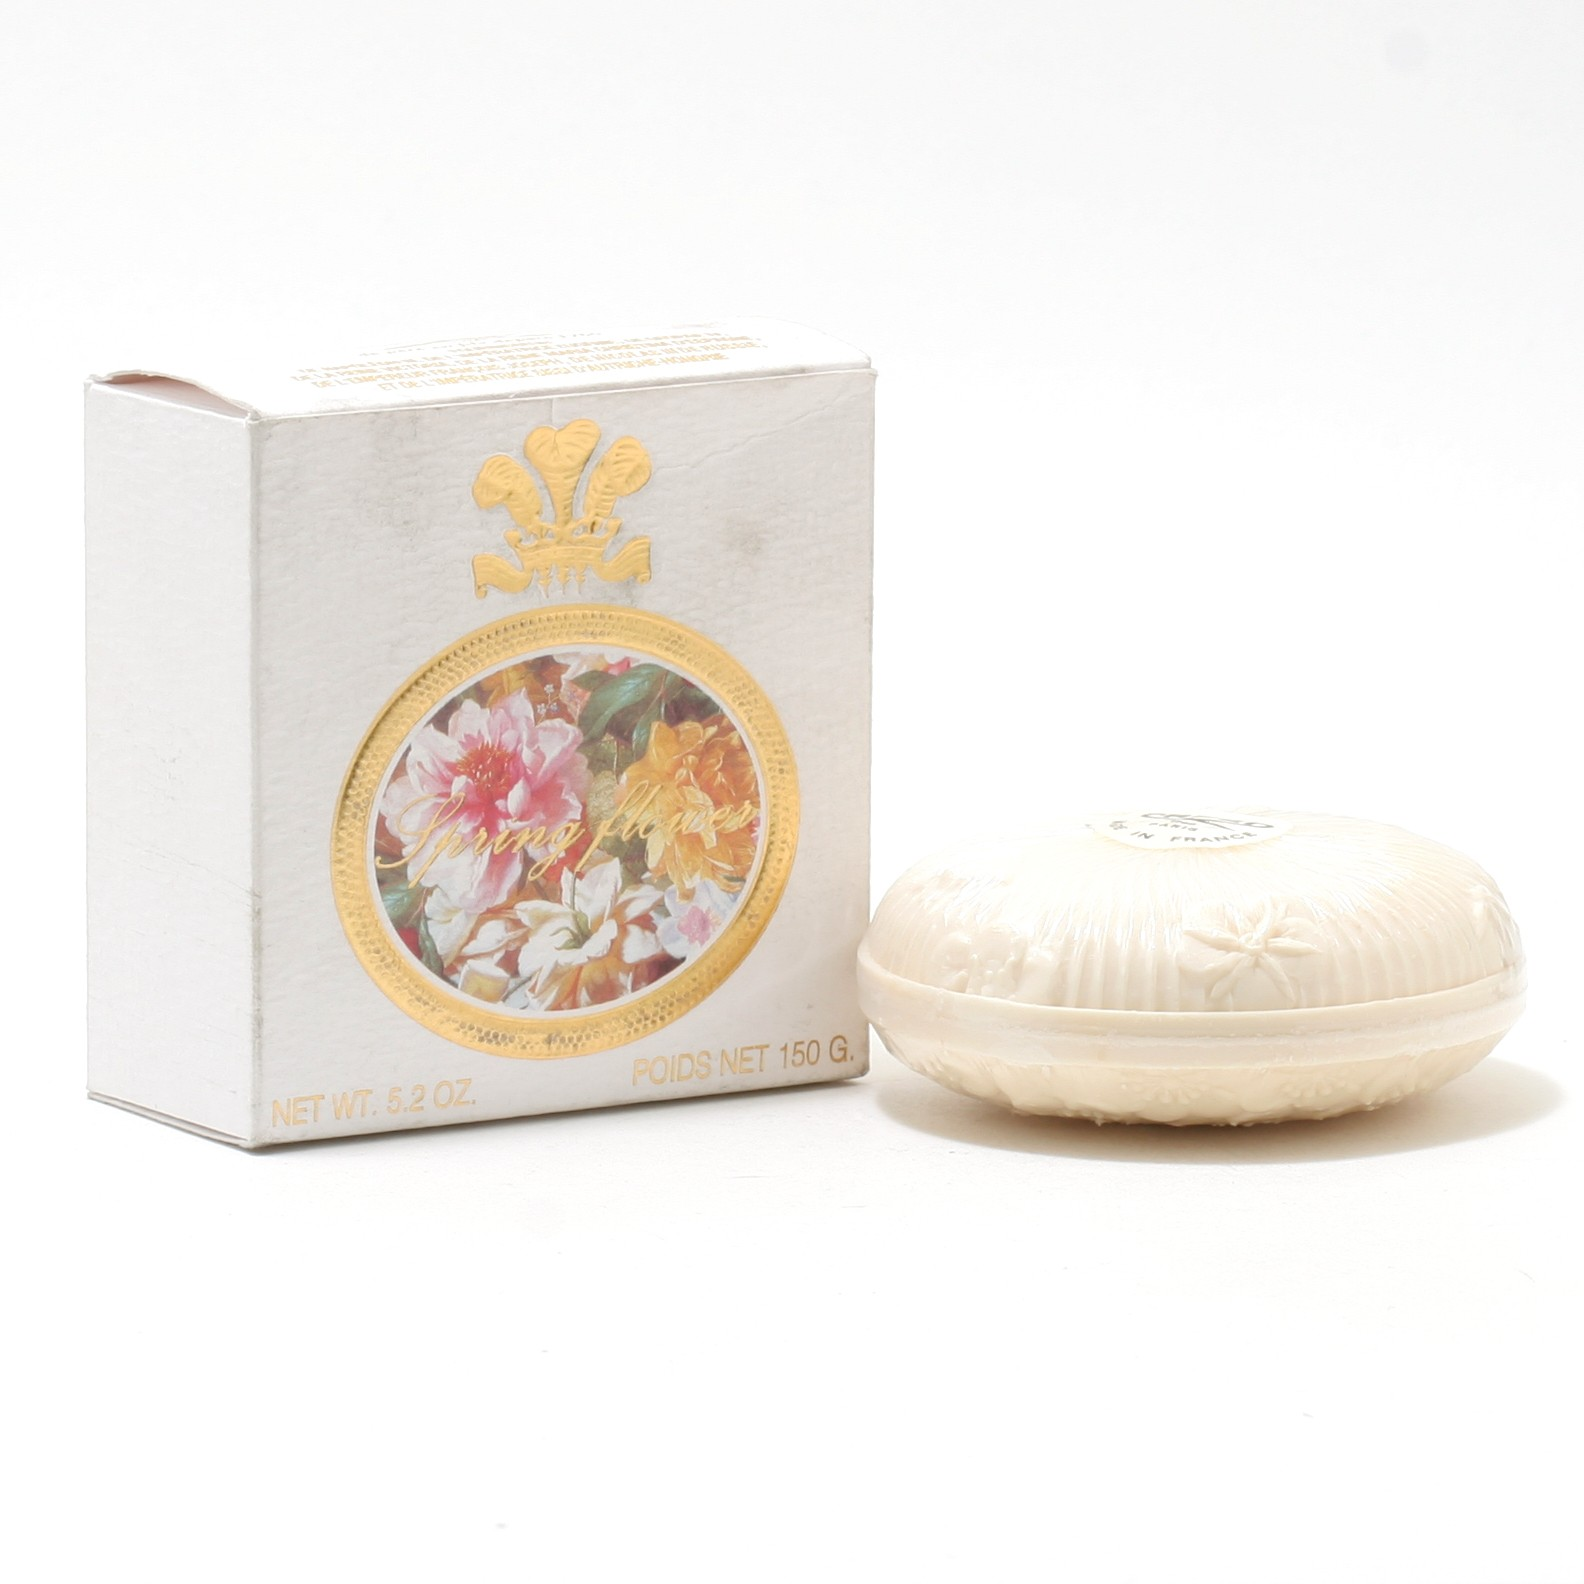 Creed Spring Flower Soap